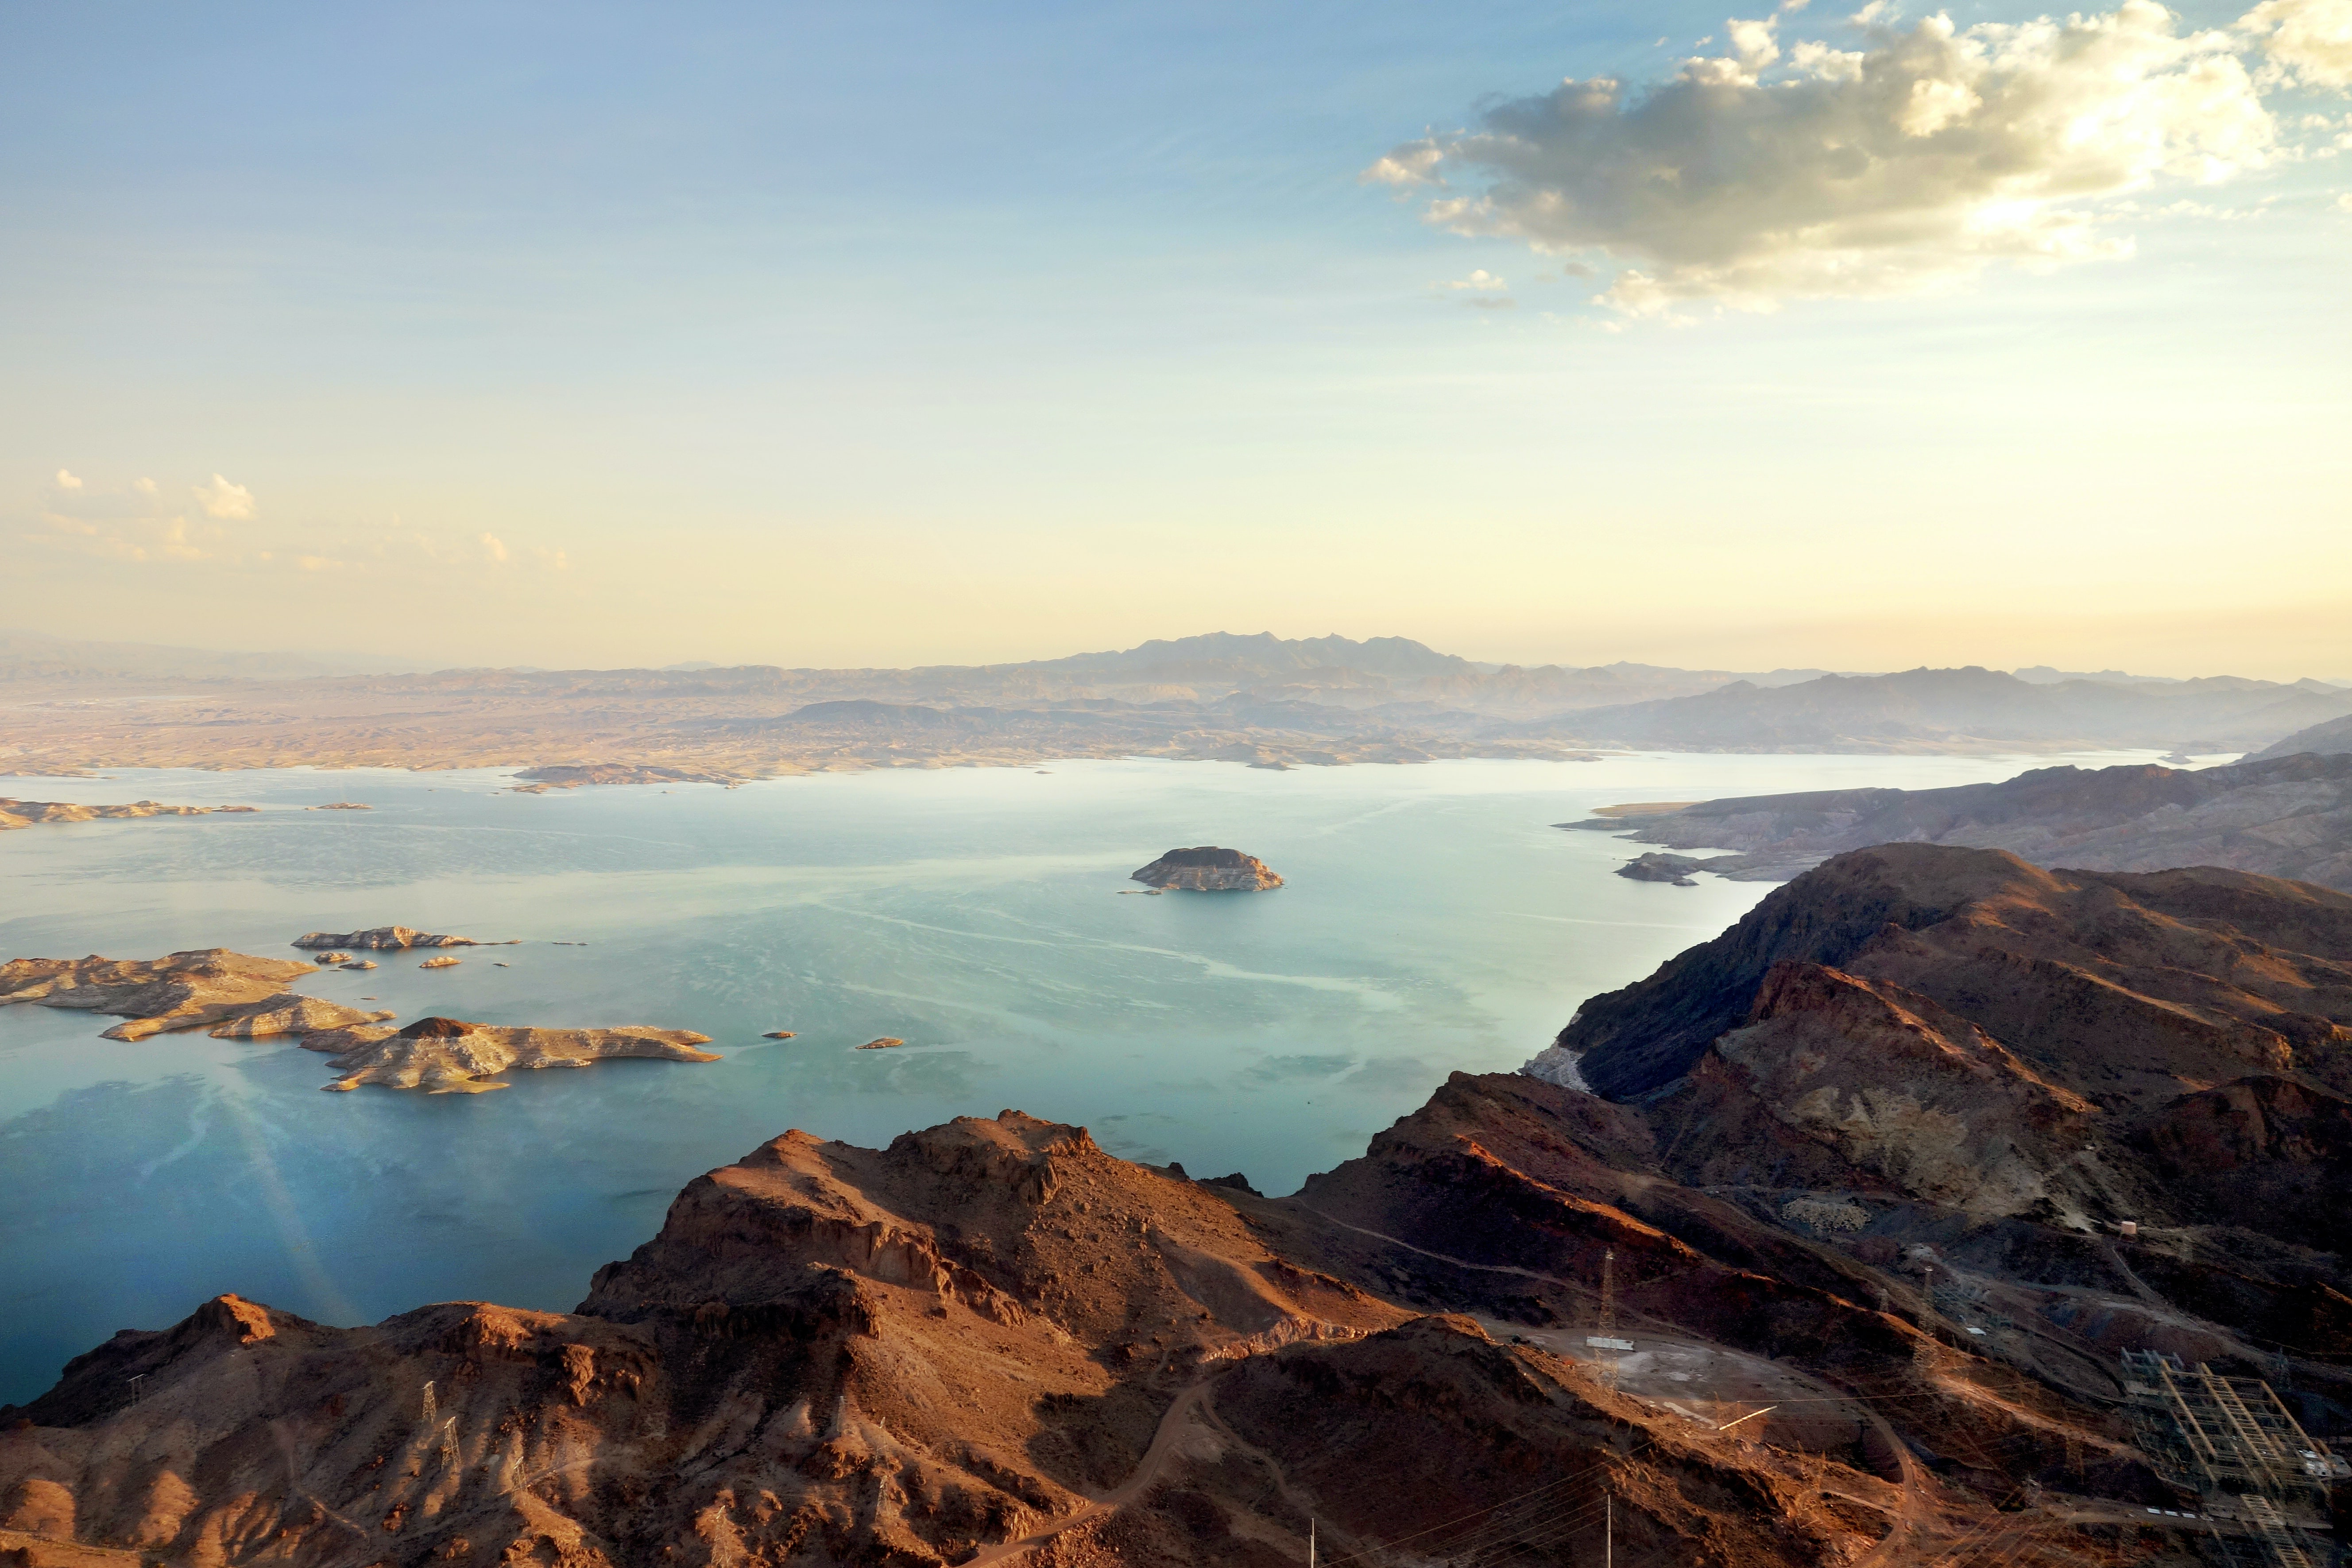 aerial view of body of water surrounded with mountains